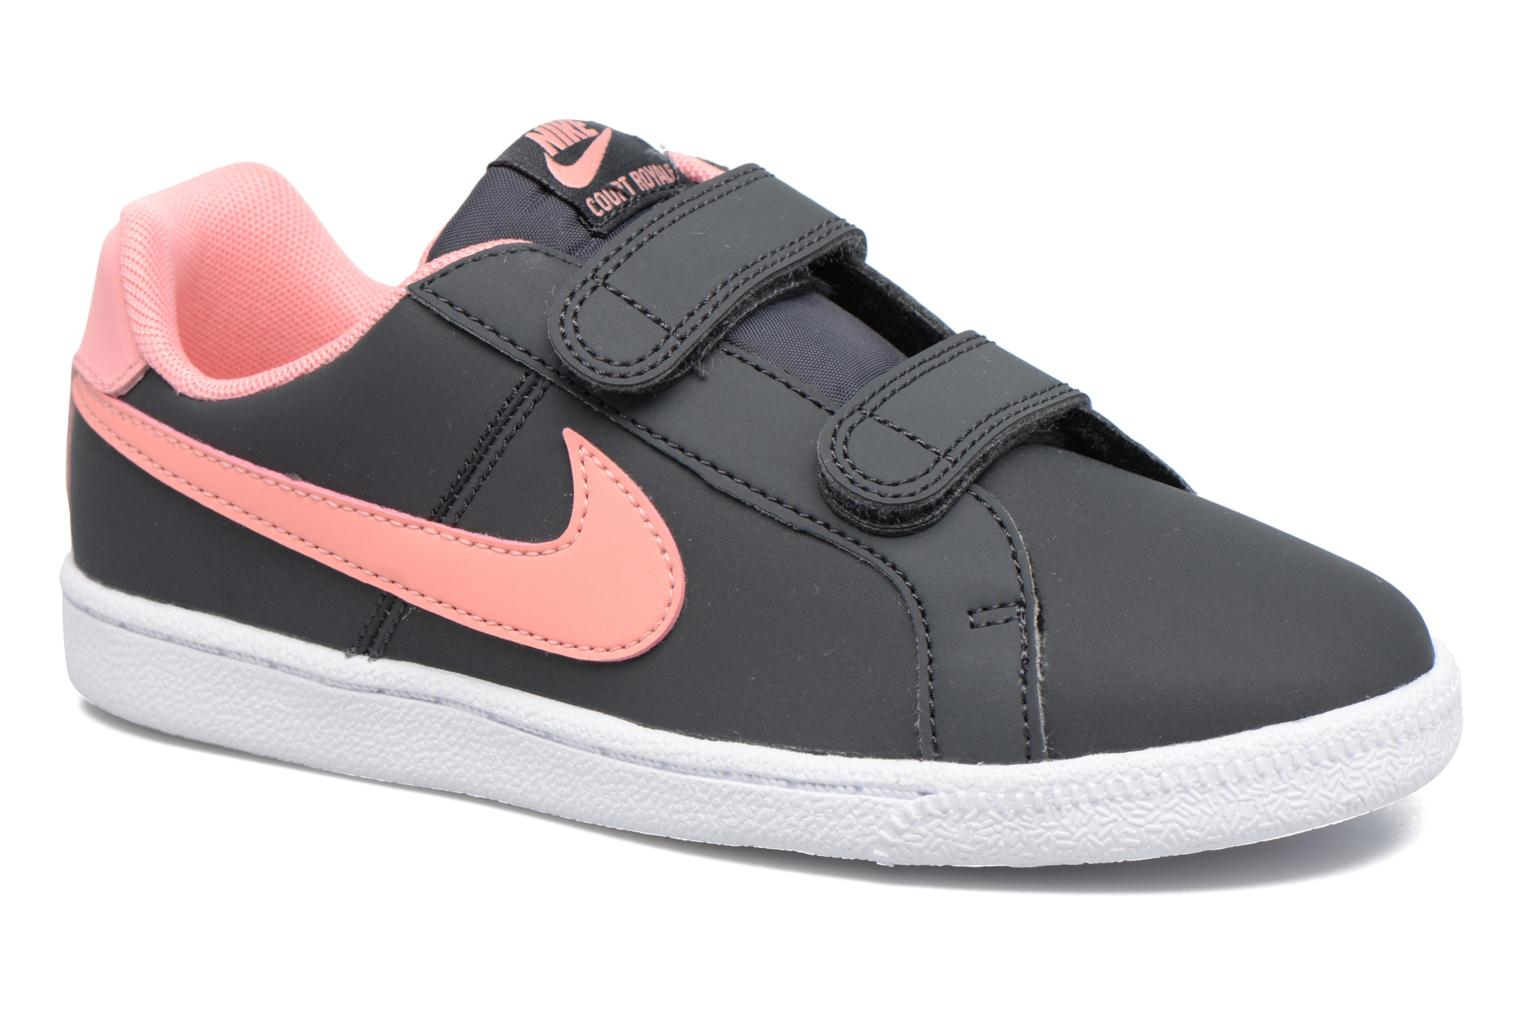 Elemental Rose/Elemental Rose-Vast Grey Nike Nike Court Royale (Psv) (Rose)